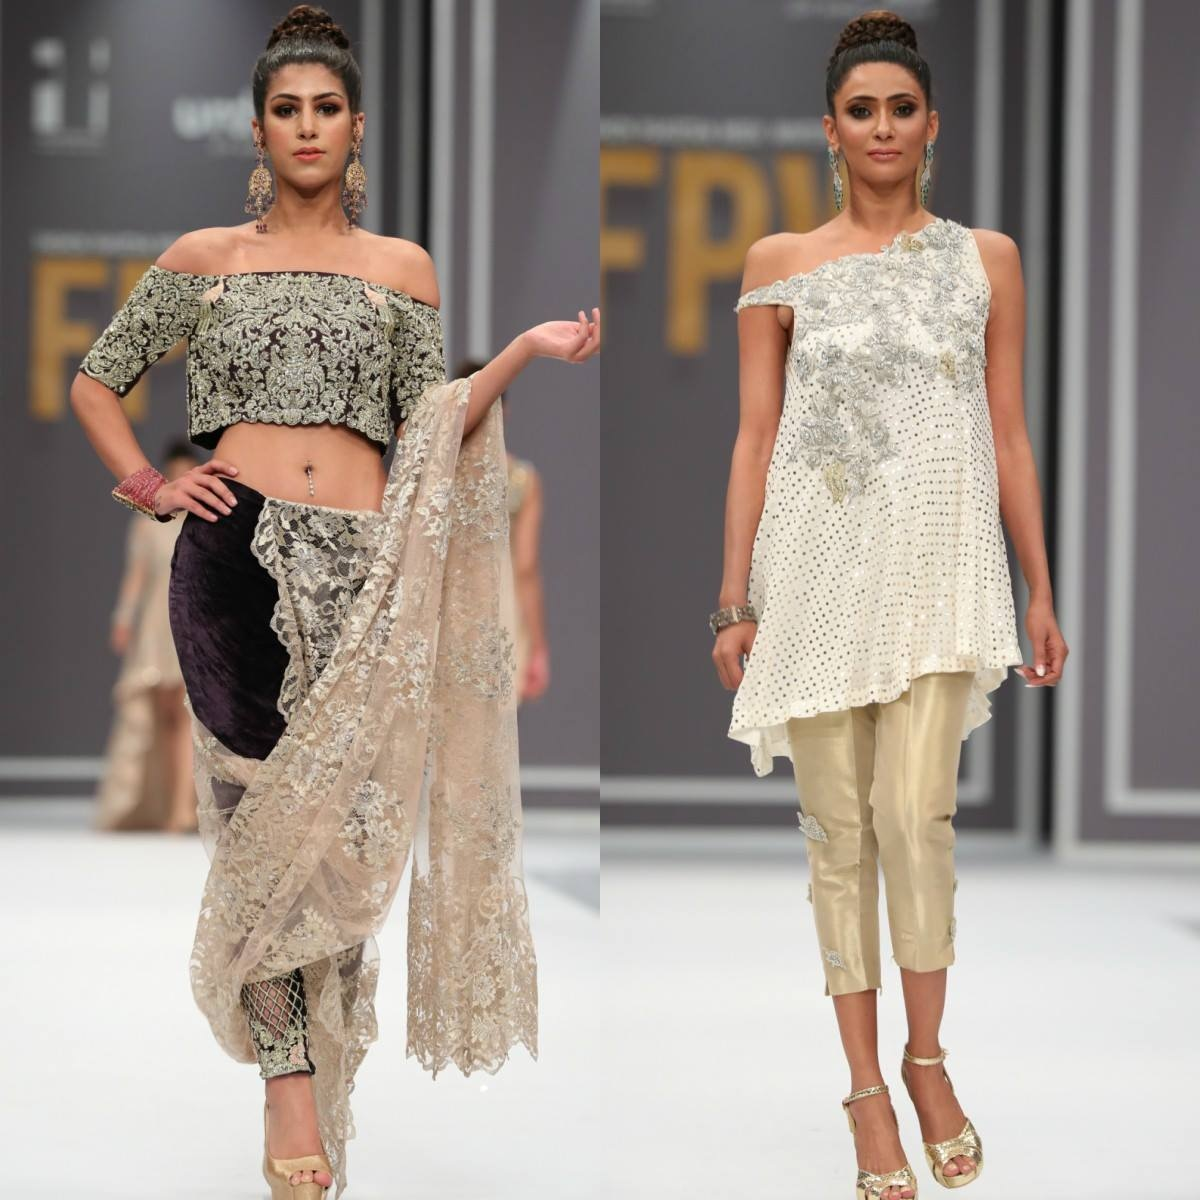 Rozina Munib's designs were unimaginative and required better finishing